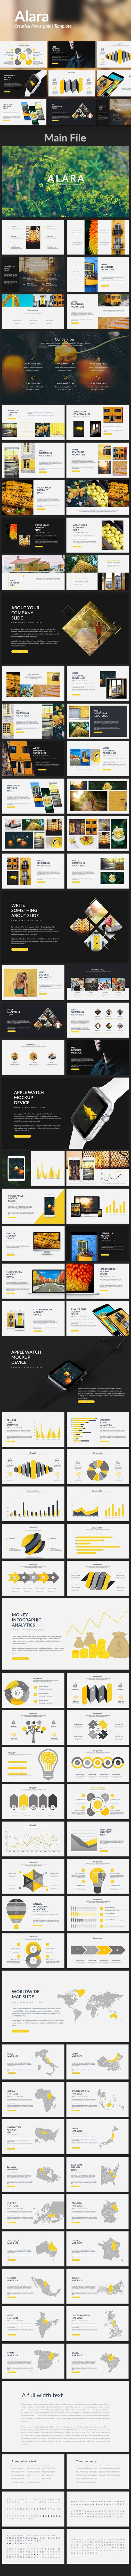 Alara  Creative Powerpoint Template #industrial #data charts • Download ➝ https://graphicriver.net/item/alara-creative-powerpoint-template/19435780?ref=pxcr